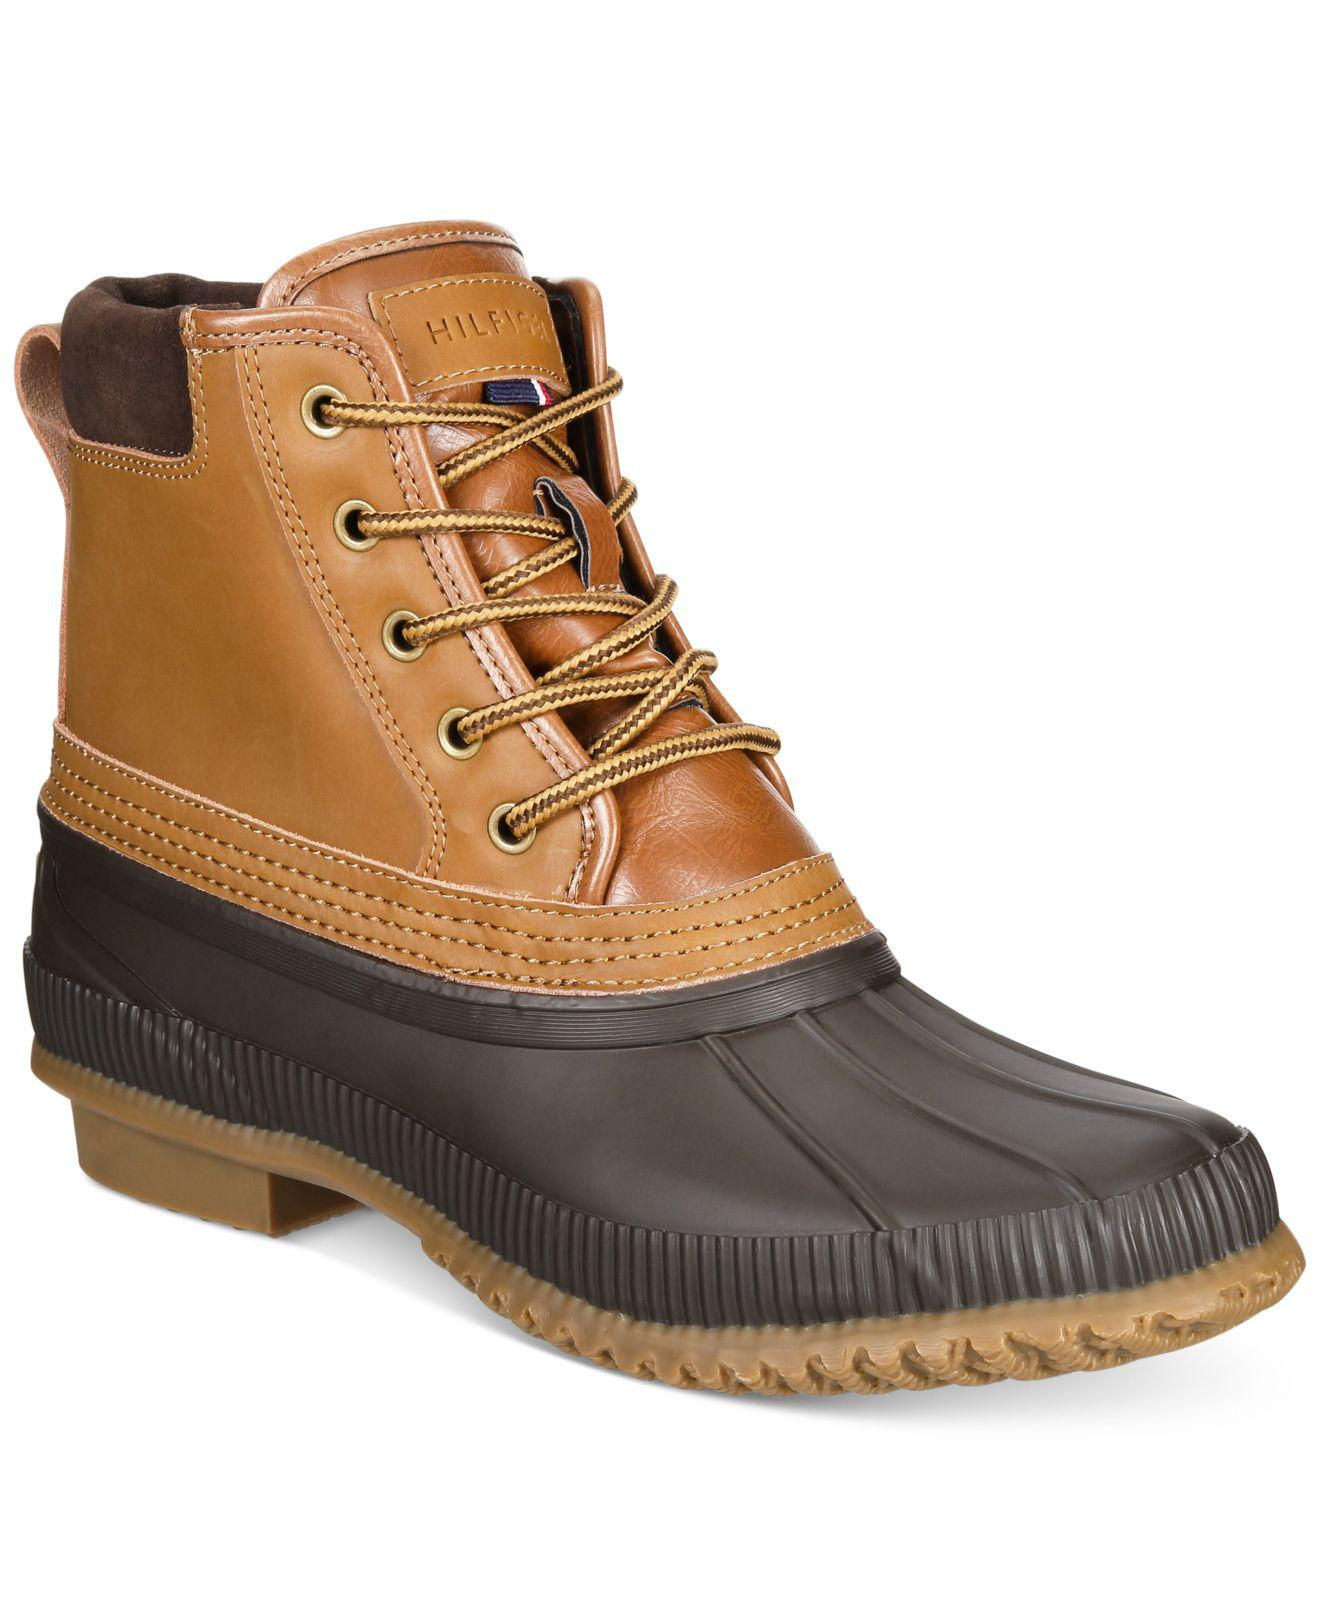 2e83dbcbae6c6 Lyst - Tommy Hilfiger Men s Casey Waterproof Duck Boots